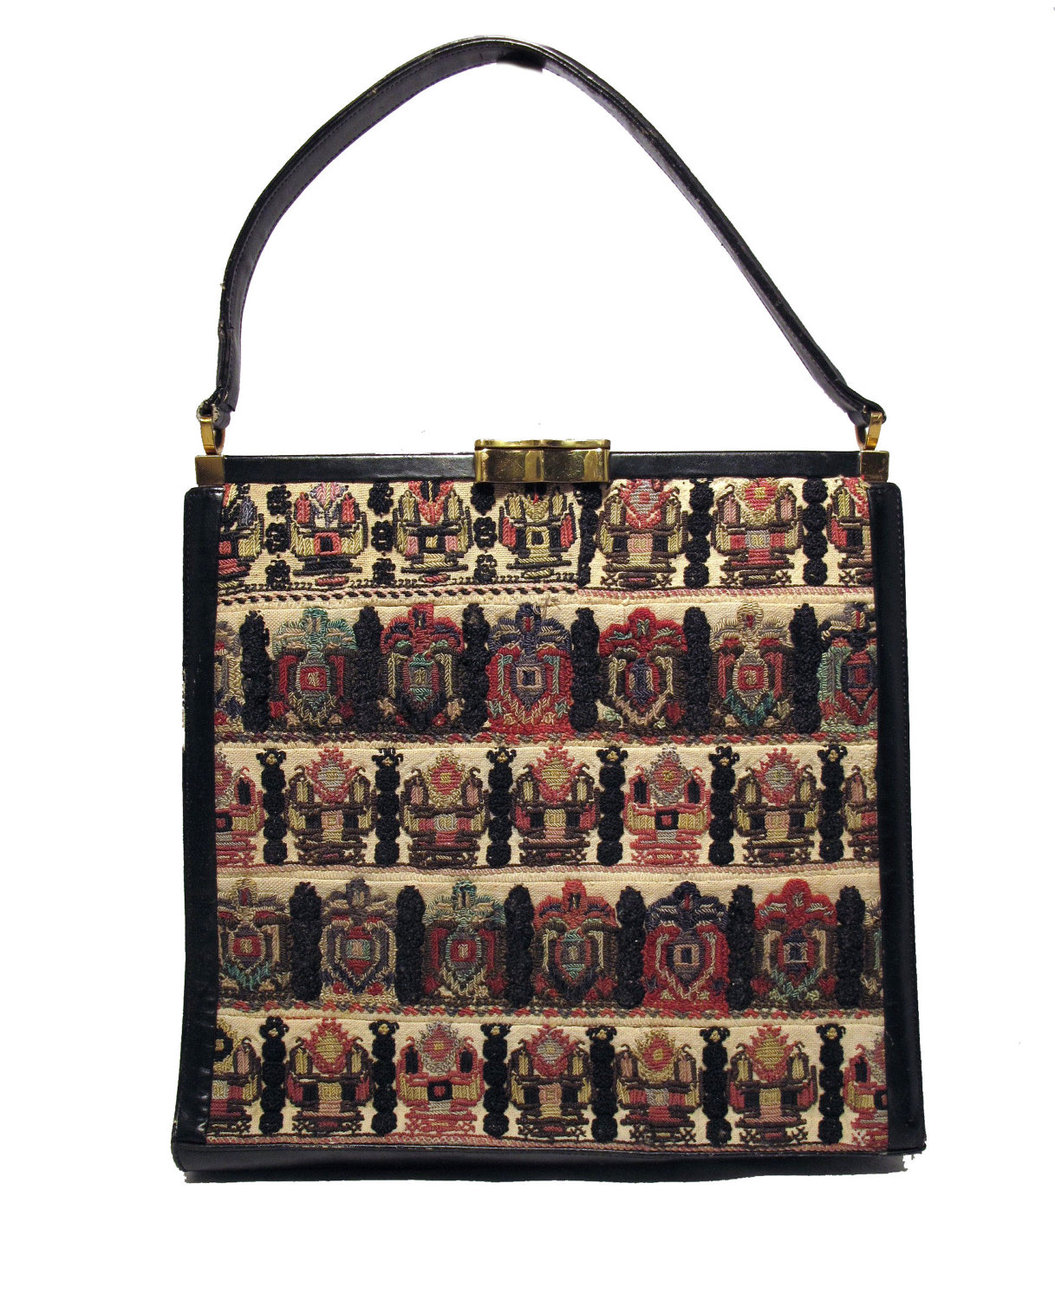 1960s Luxury Needlepoint Handbag